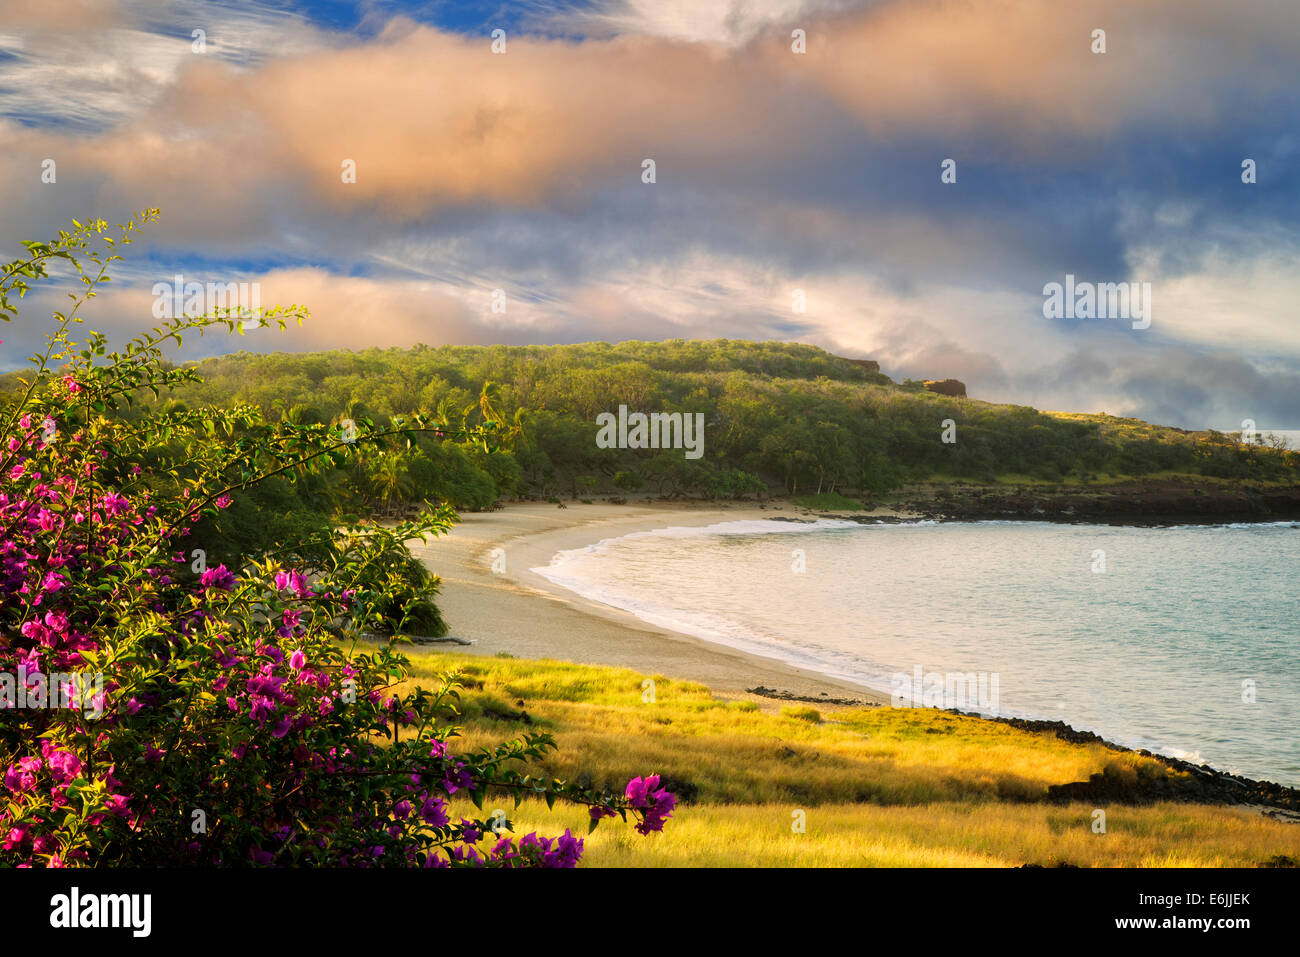 Strand im Four Seasons mit Bougainvillea-Blüten. Lanai, Hawaii. Stockbild